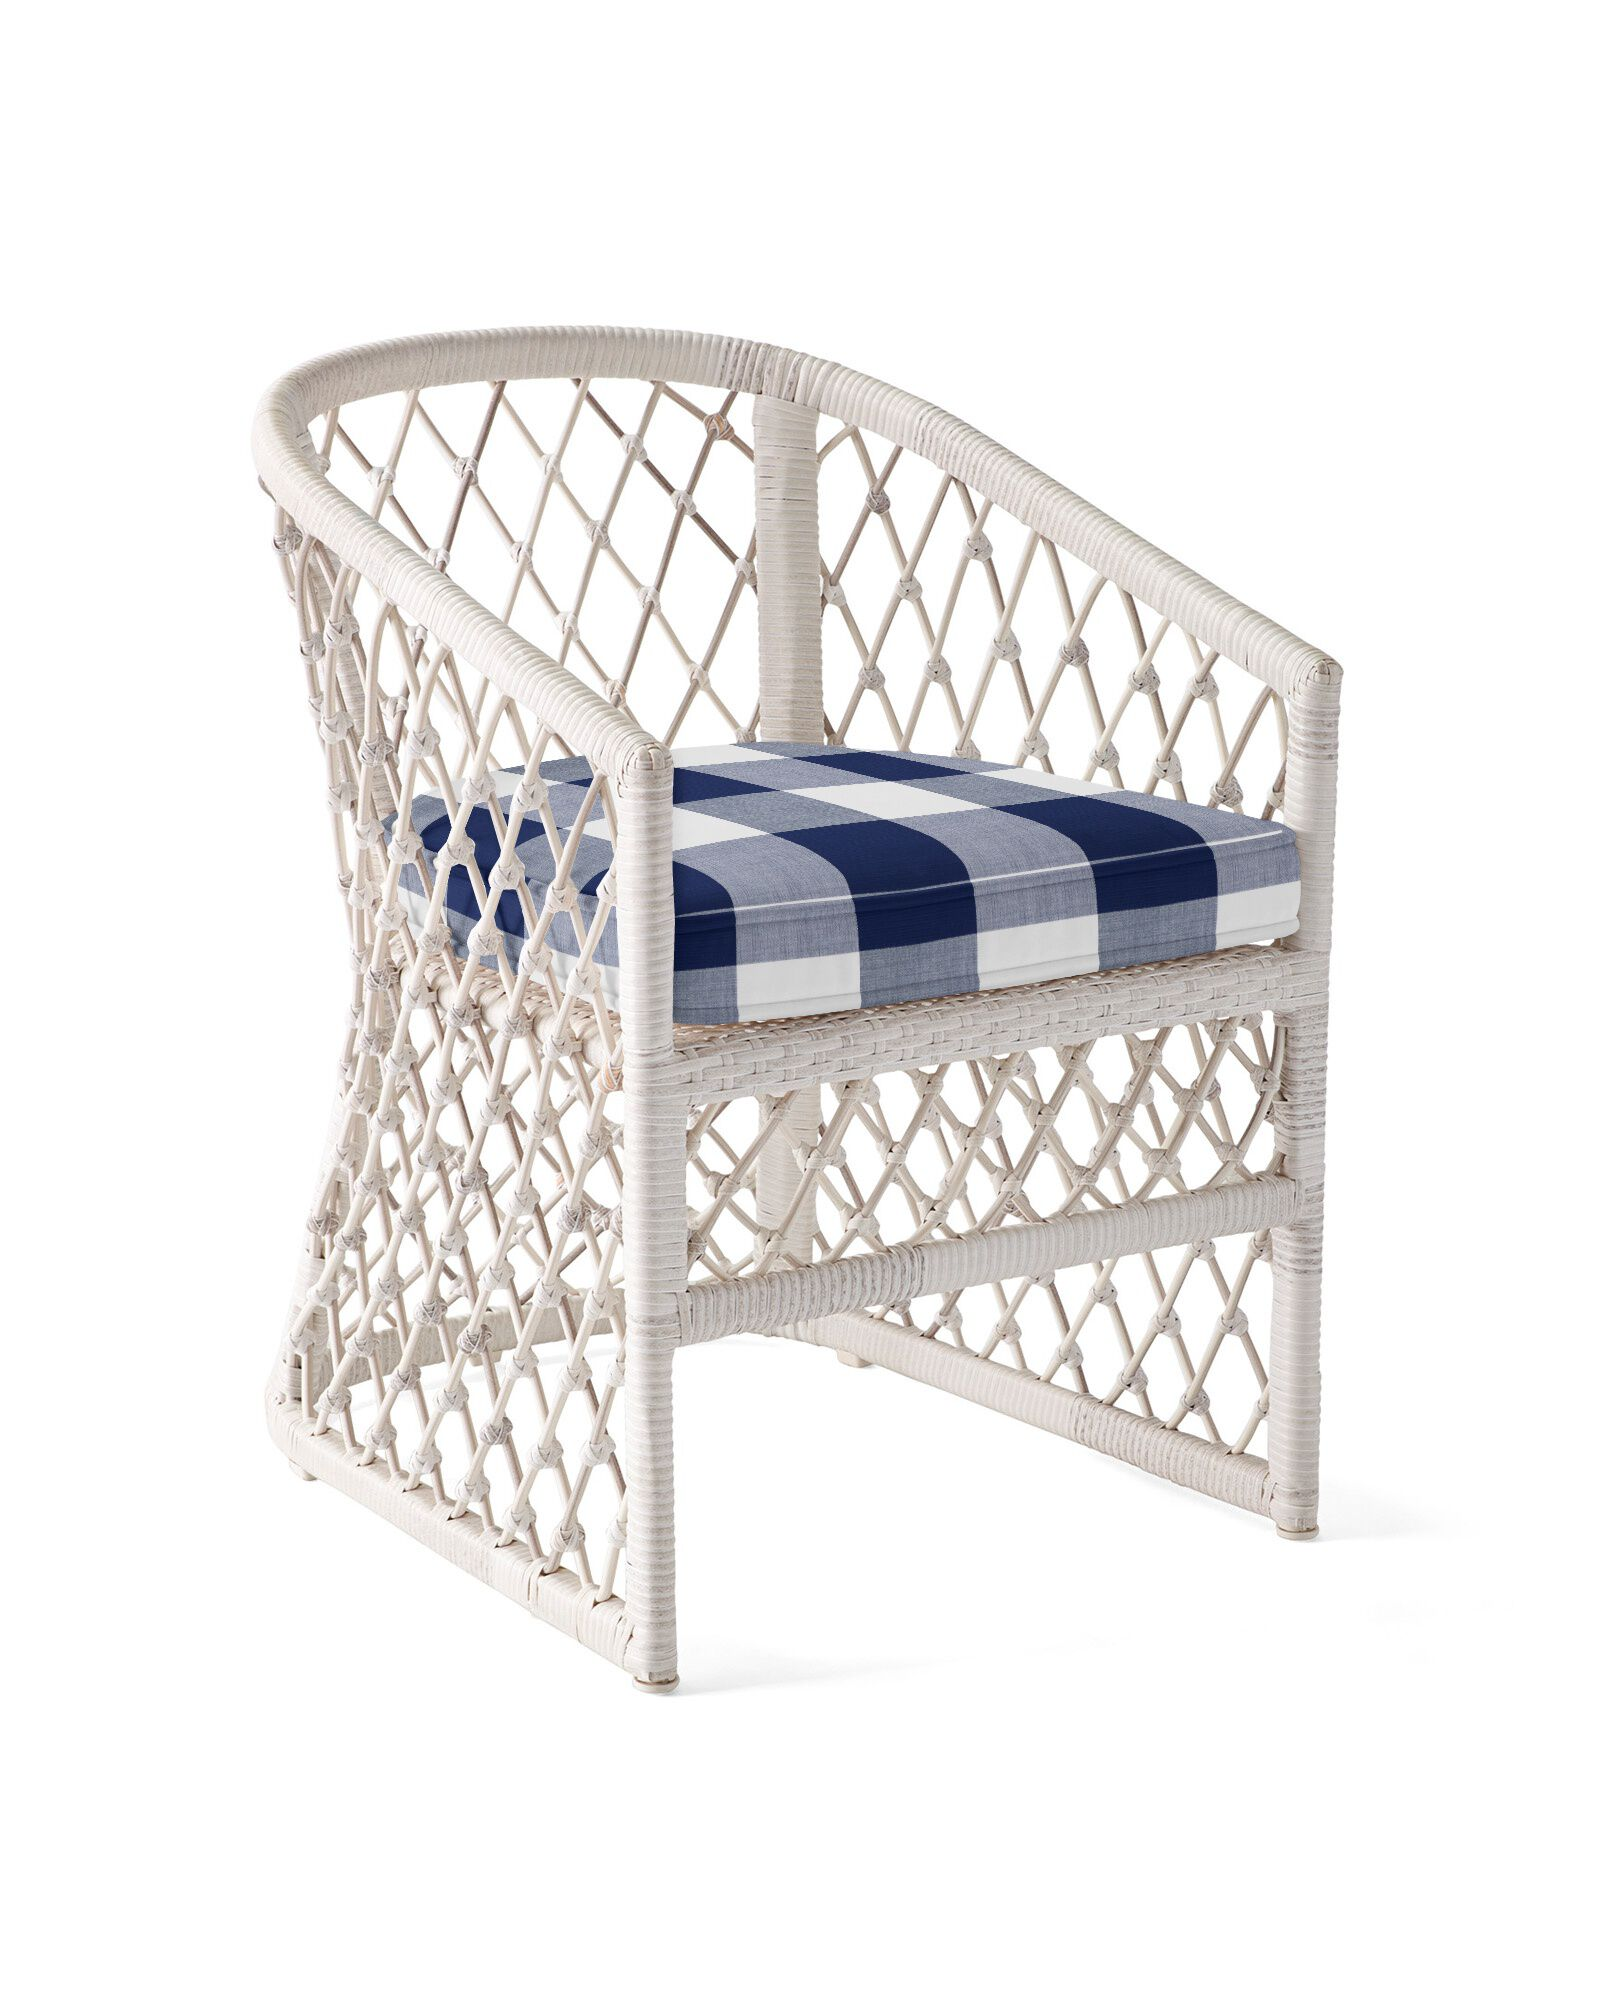 Cushion Cover for Capistrano Dining Chair, Perennials Gingham Navy